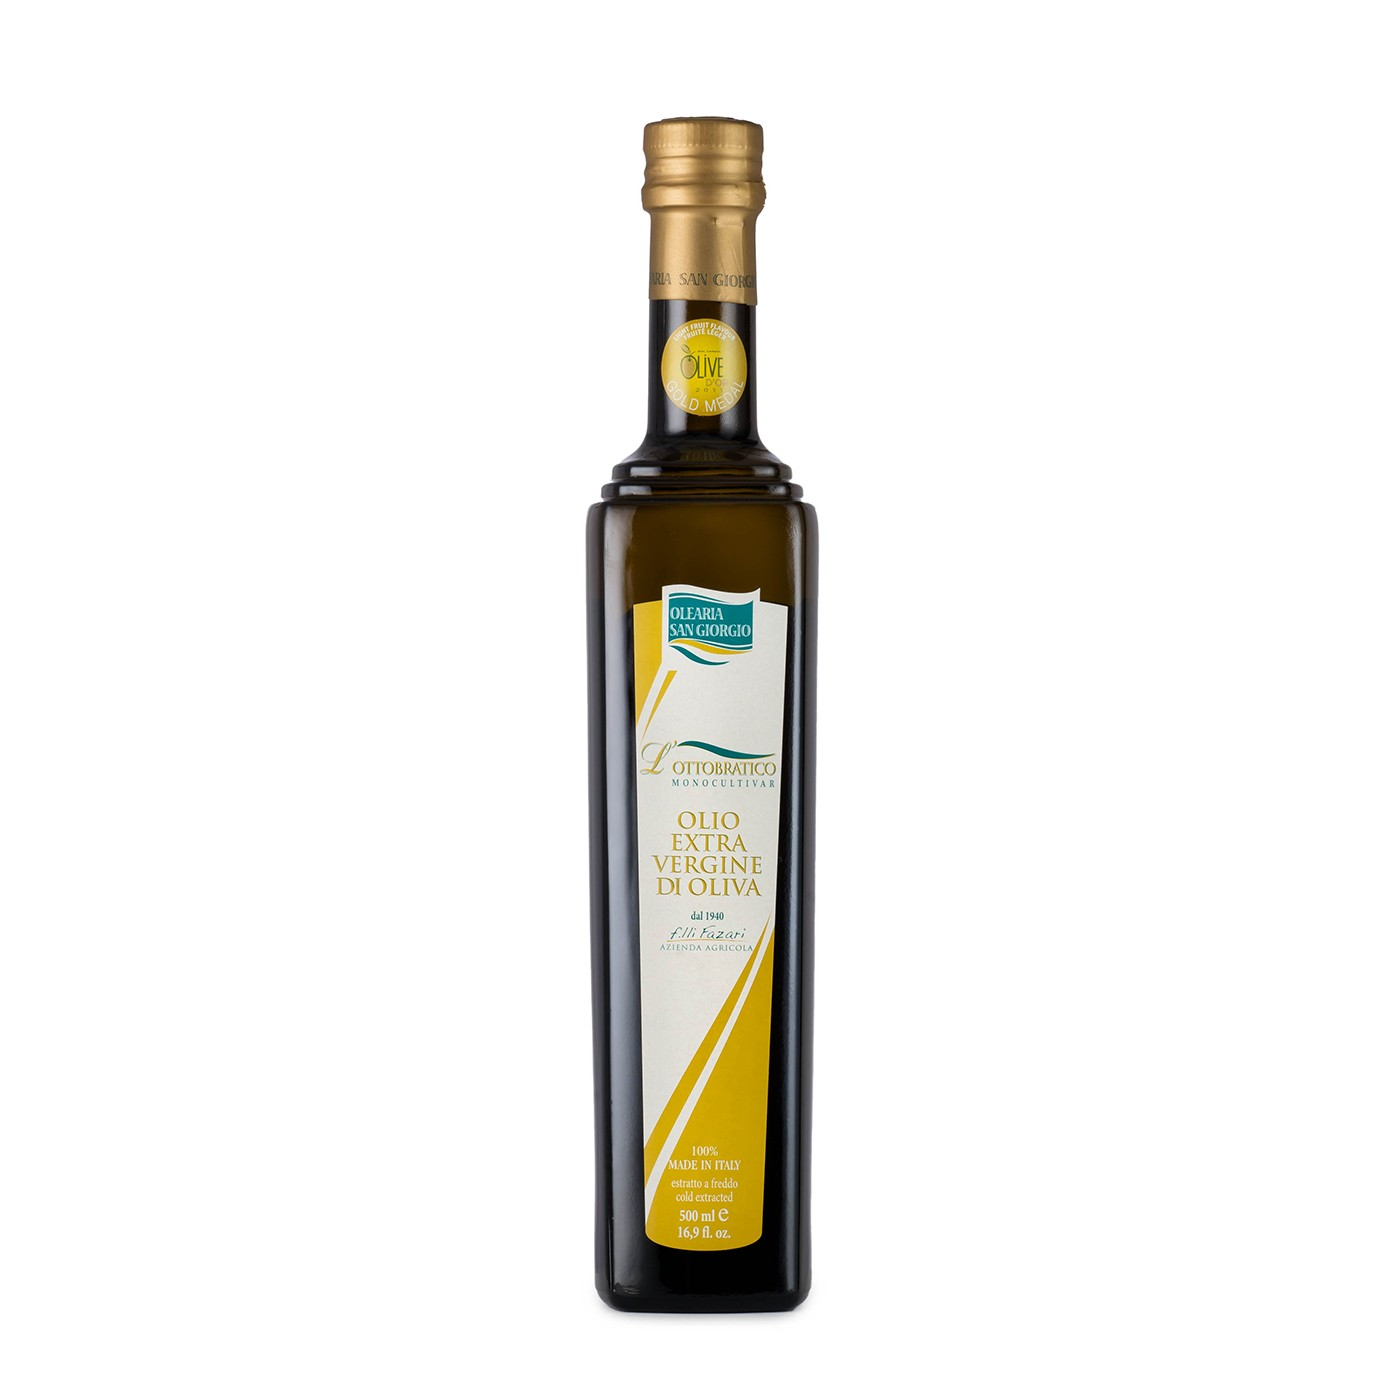 Ottobratico Slow Food Presidia Extra Virgin Olive Oil 16.9 oz